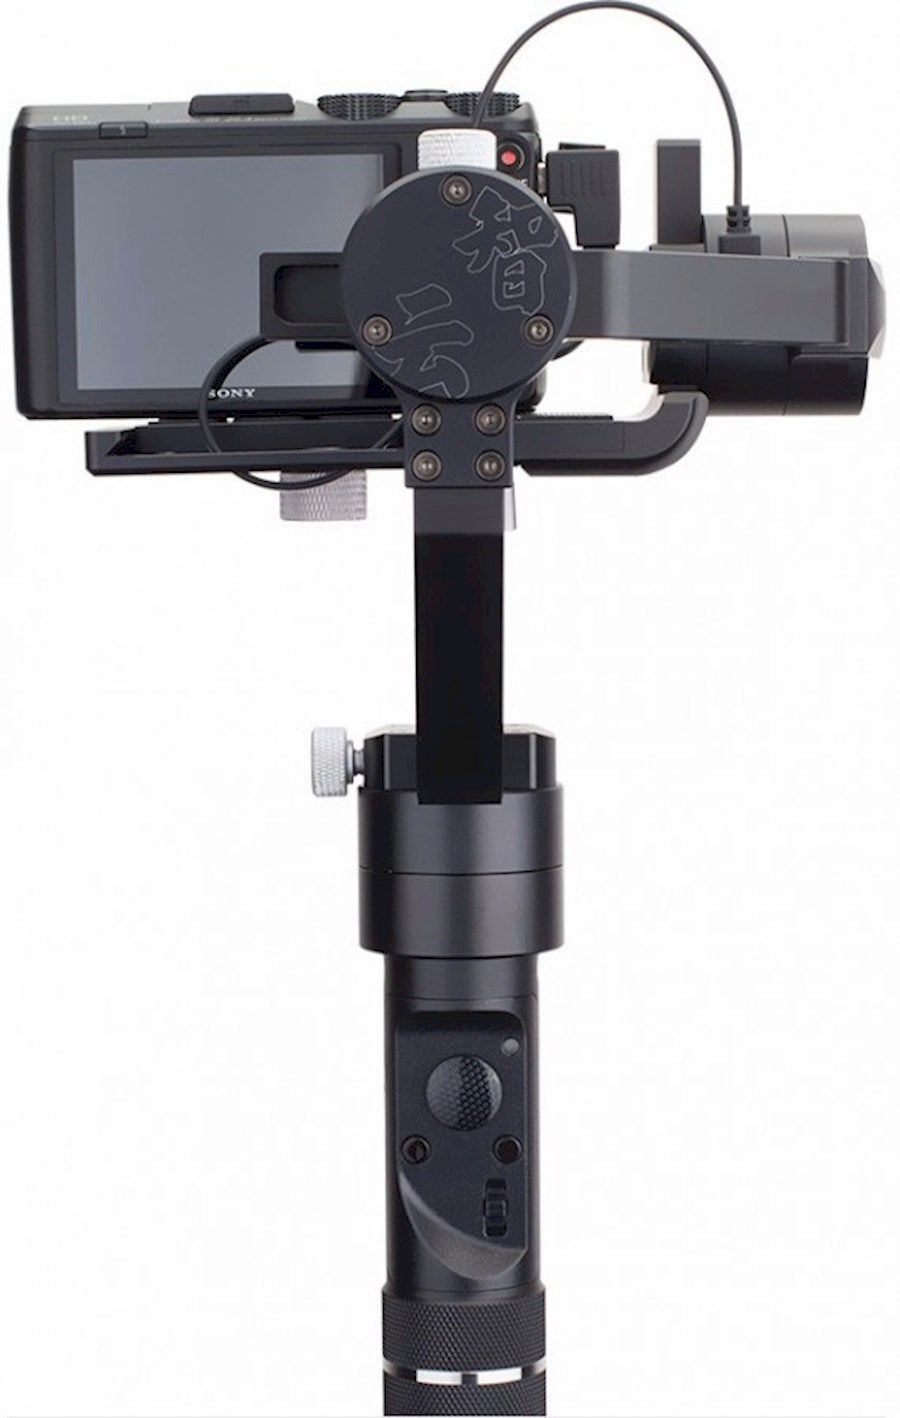 Rent a ZHIYUN CRANE-M | 3-AXIS GIMBAL FOR SMARTPHONES, ACTION CAMERAS, & MIRRORLESS CAMERAS in Duffel